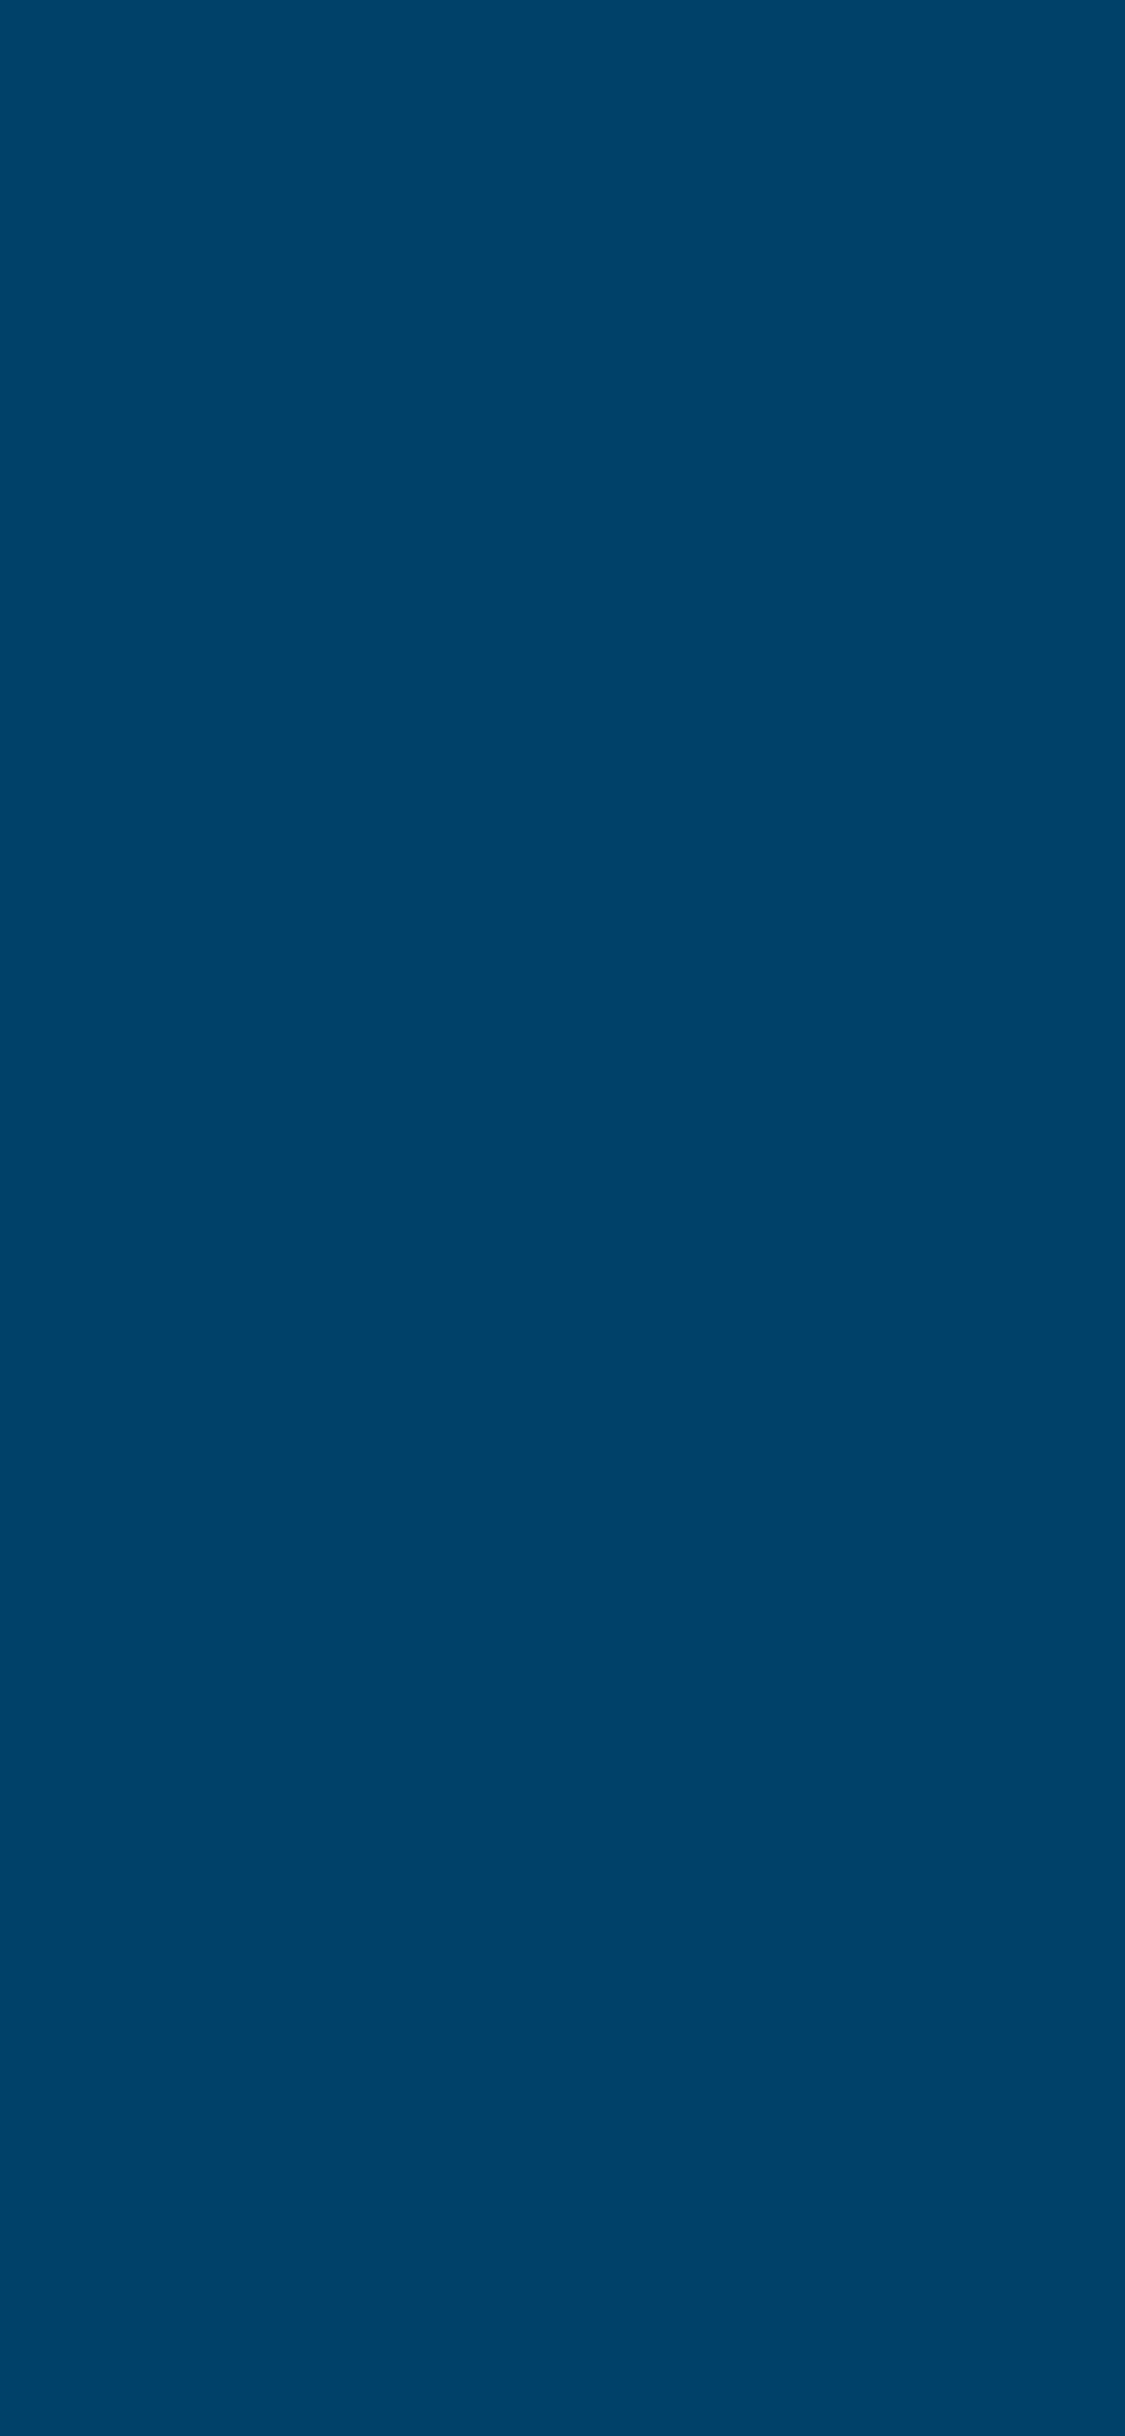 1125x2436 Dark Imperial Blue Solid Color Background